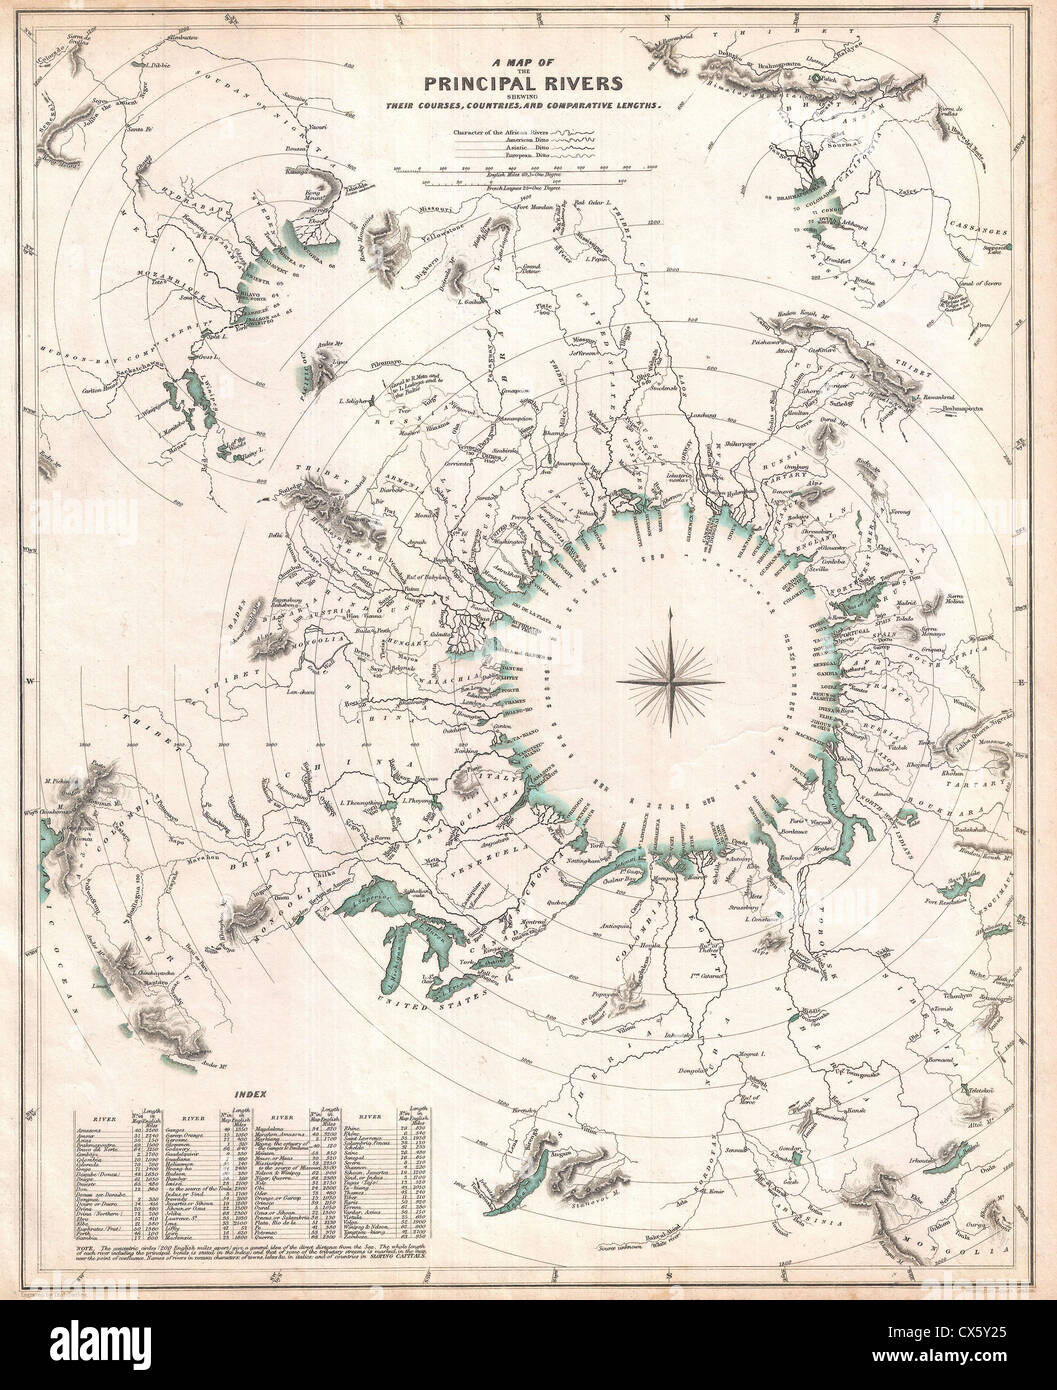 1834 S.D.U.K. Comparative Map or Chart of the World's Great Rivers - Stock Image